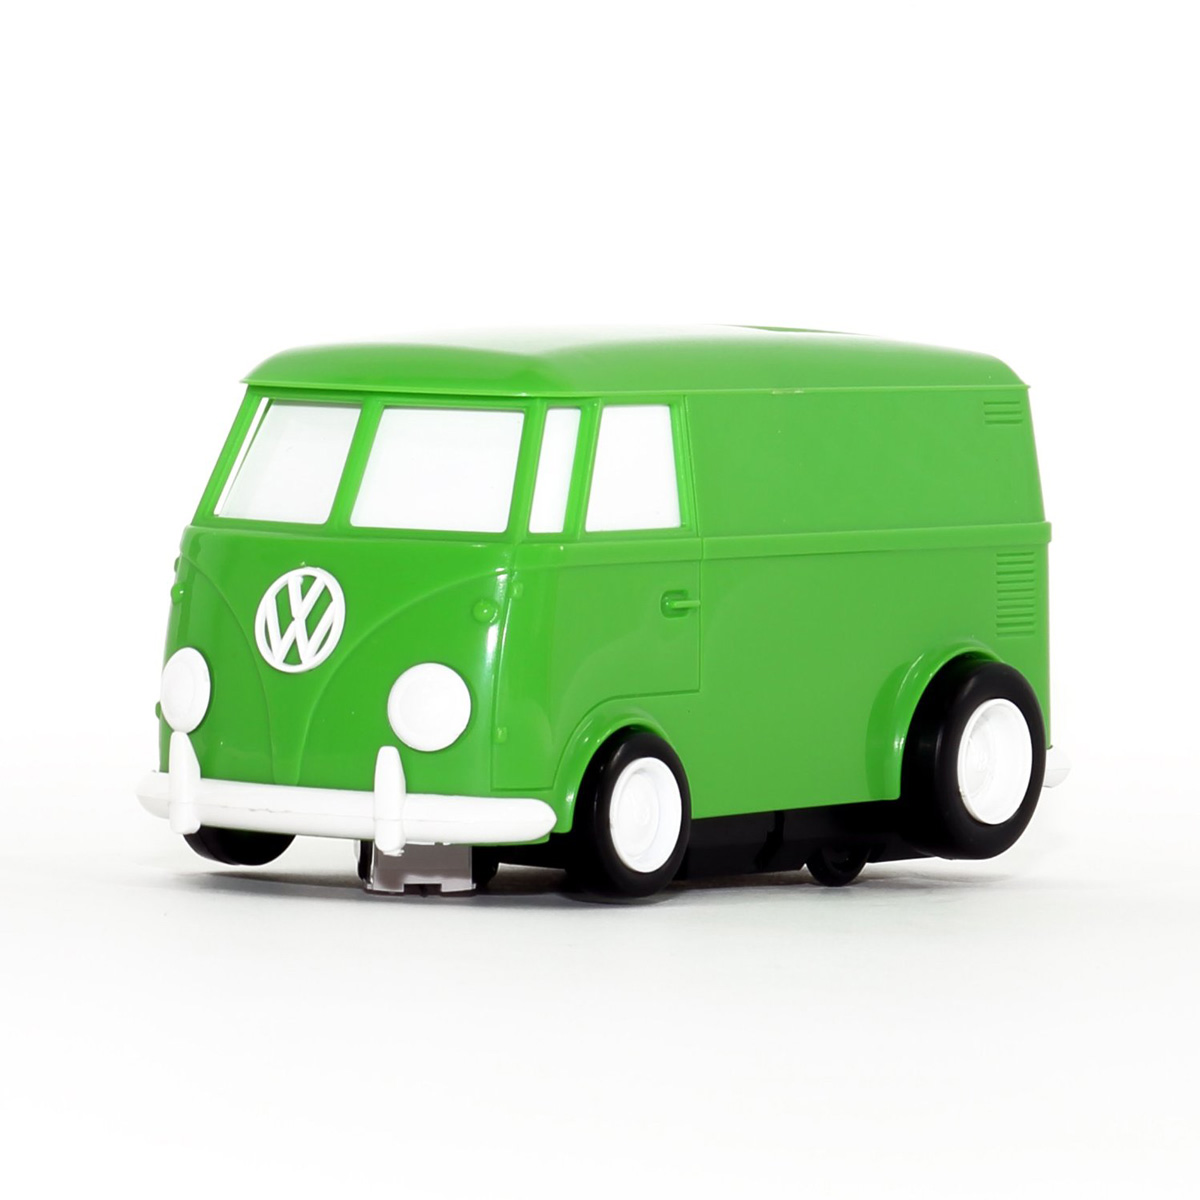 Record Runner Vw Bus Portable Self Contained Vinyl Record Player The Green Head